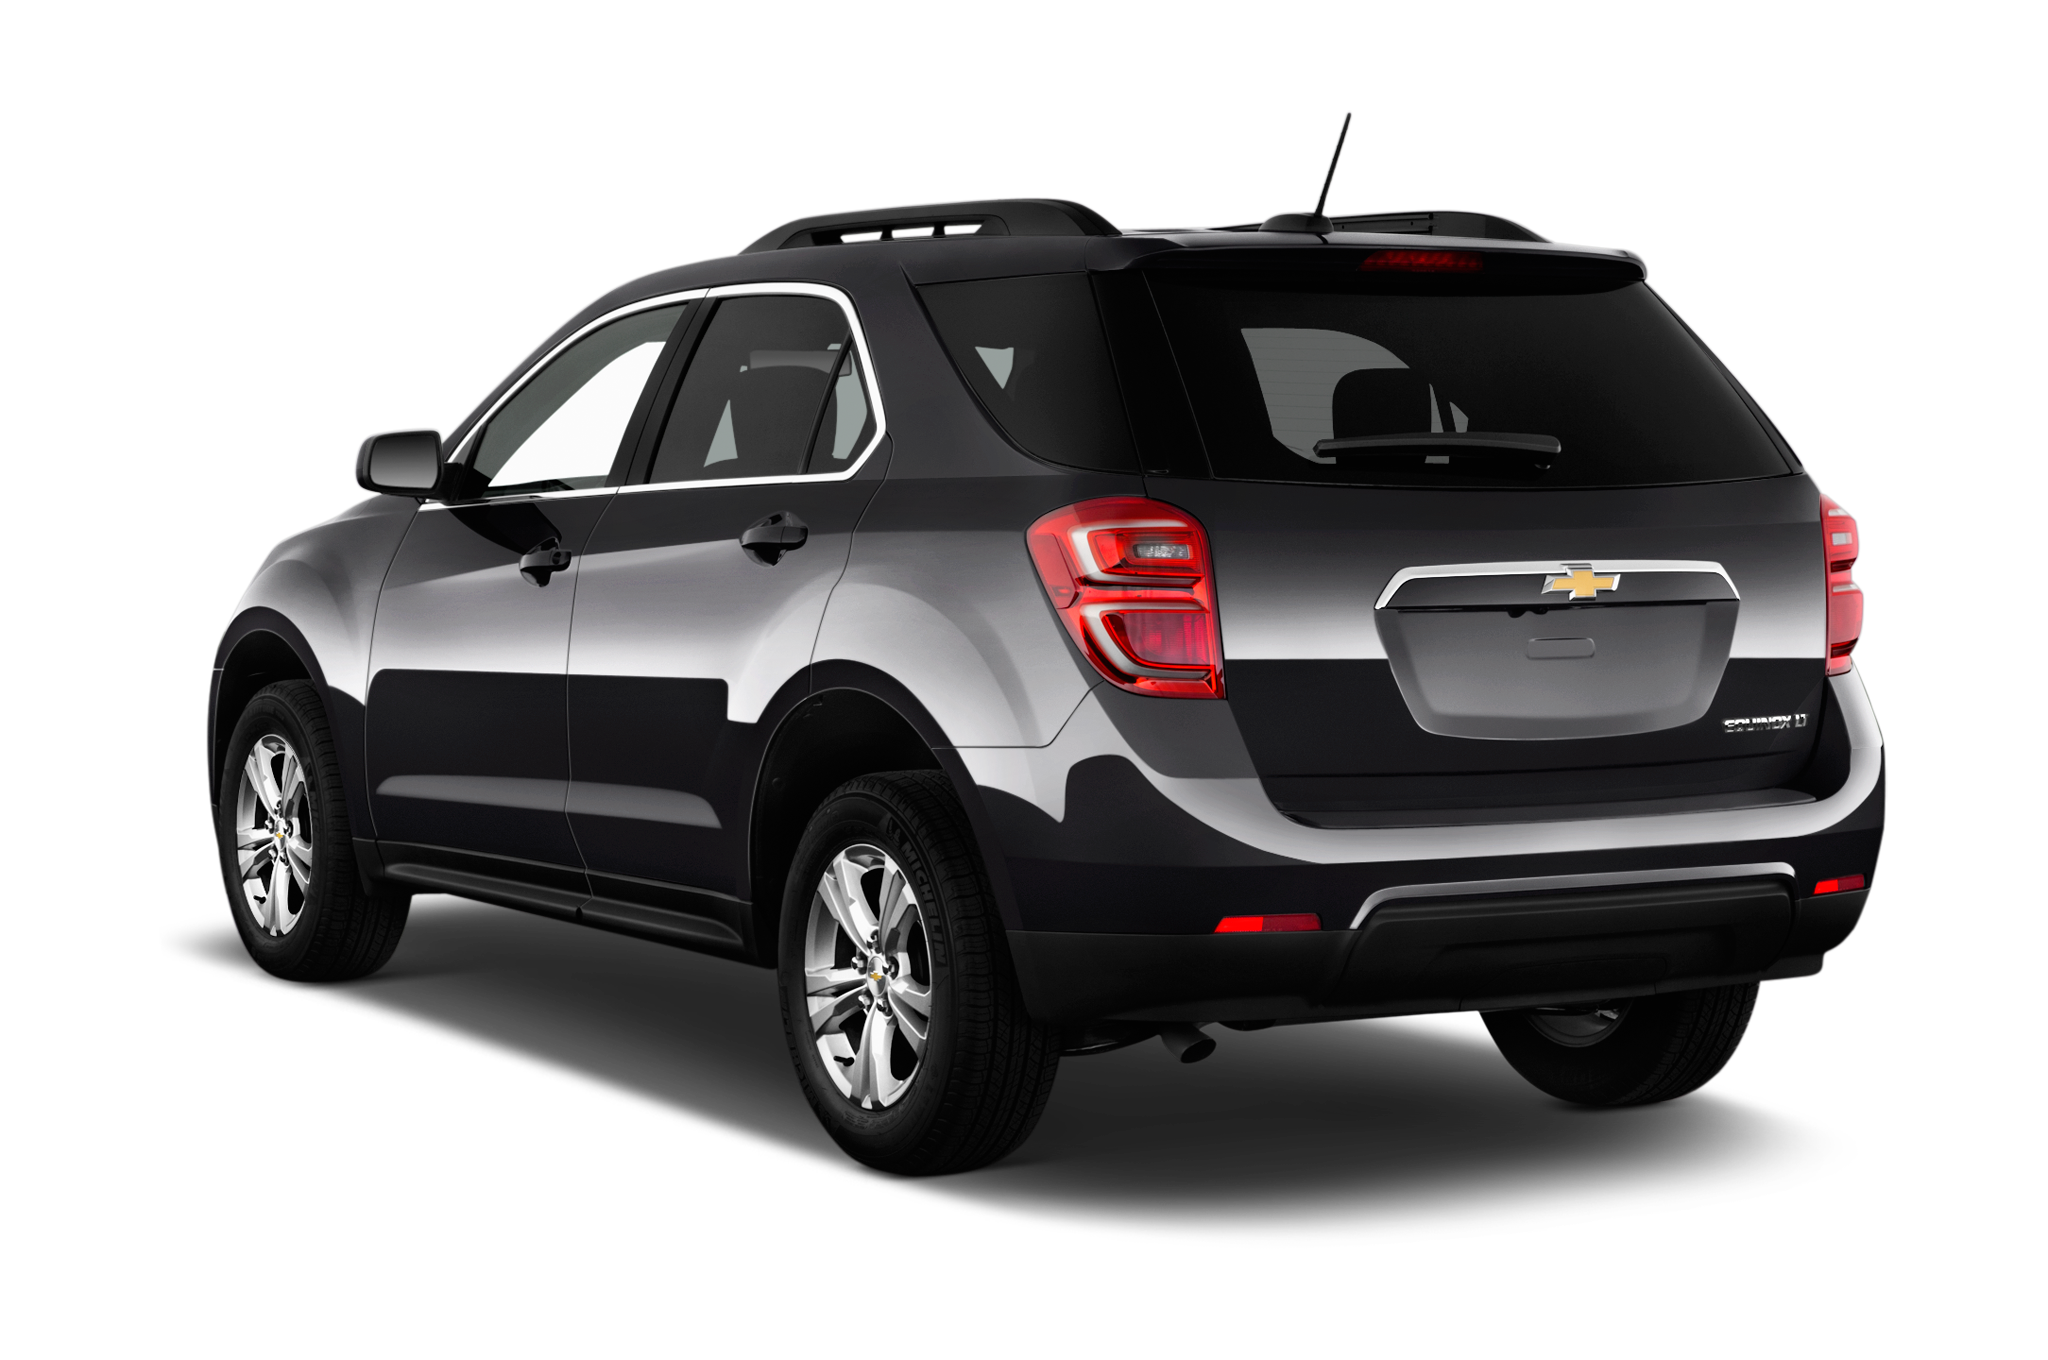 2004 chevrolet equinox latest news features and auto show coverage automobile magazine. Black Bedroom Furniture Sets. Home Design Ideas